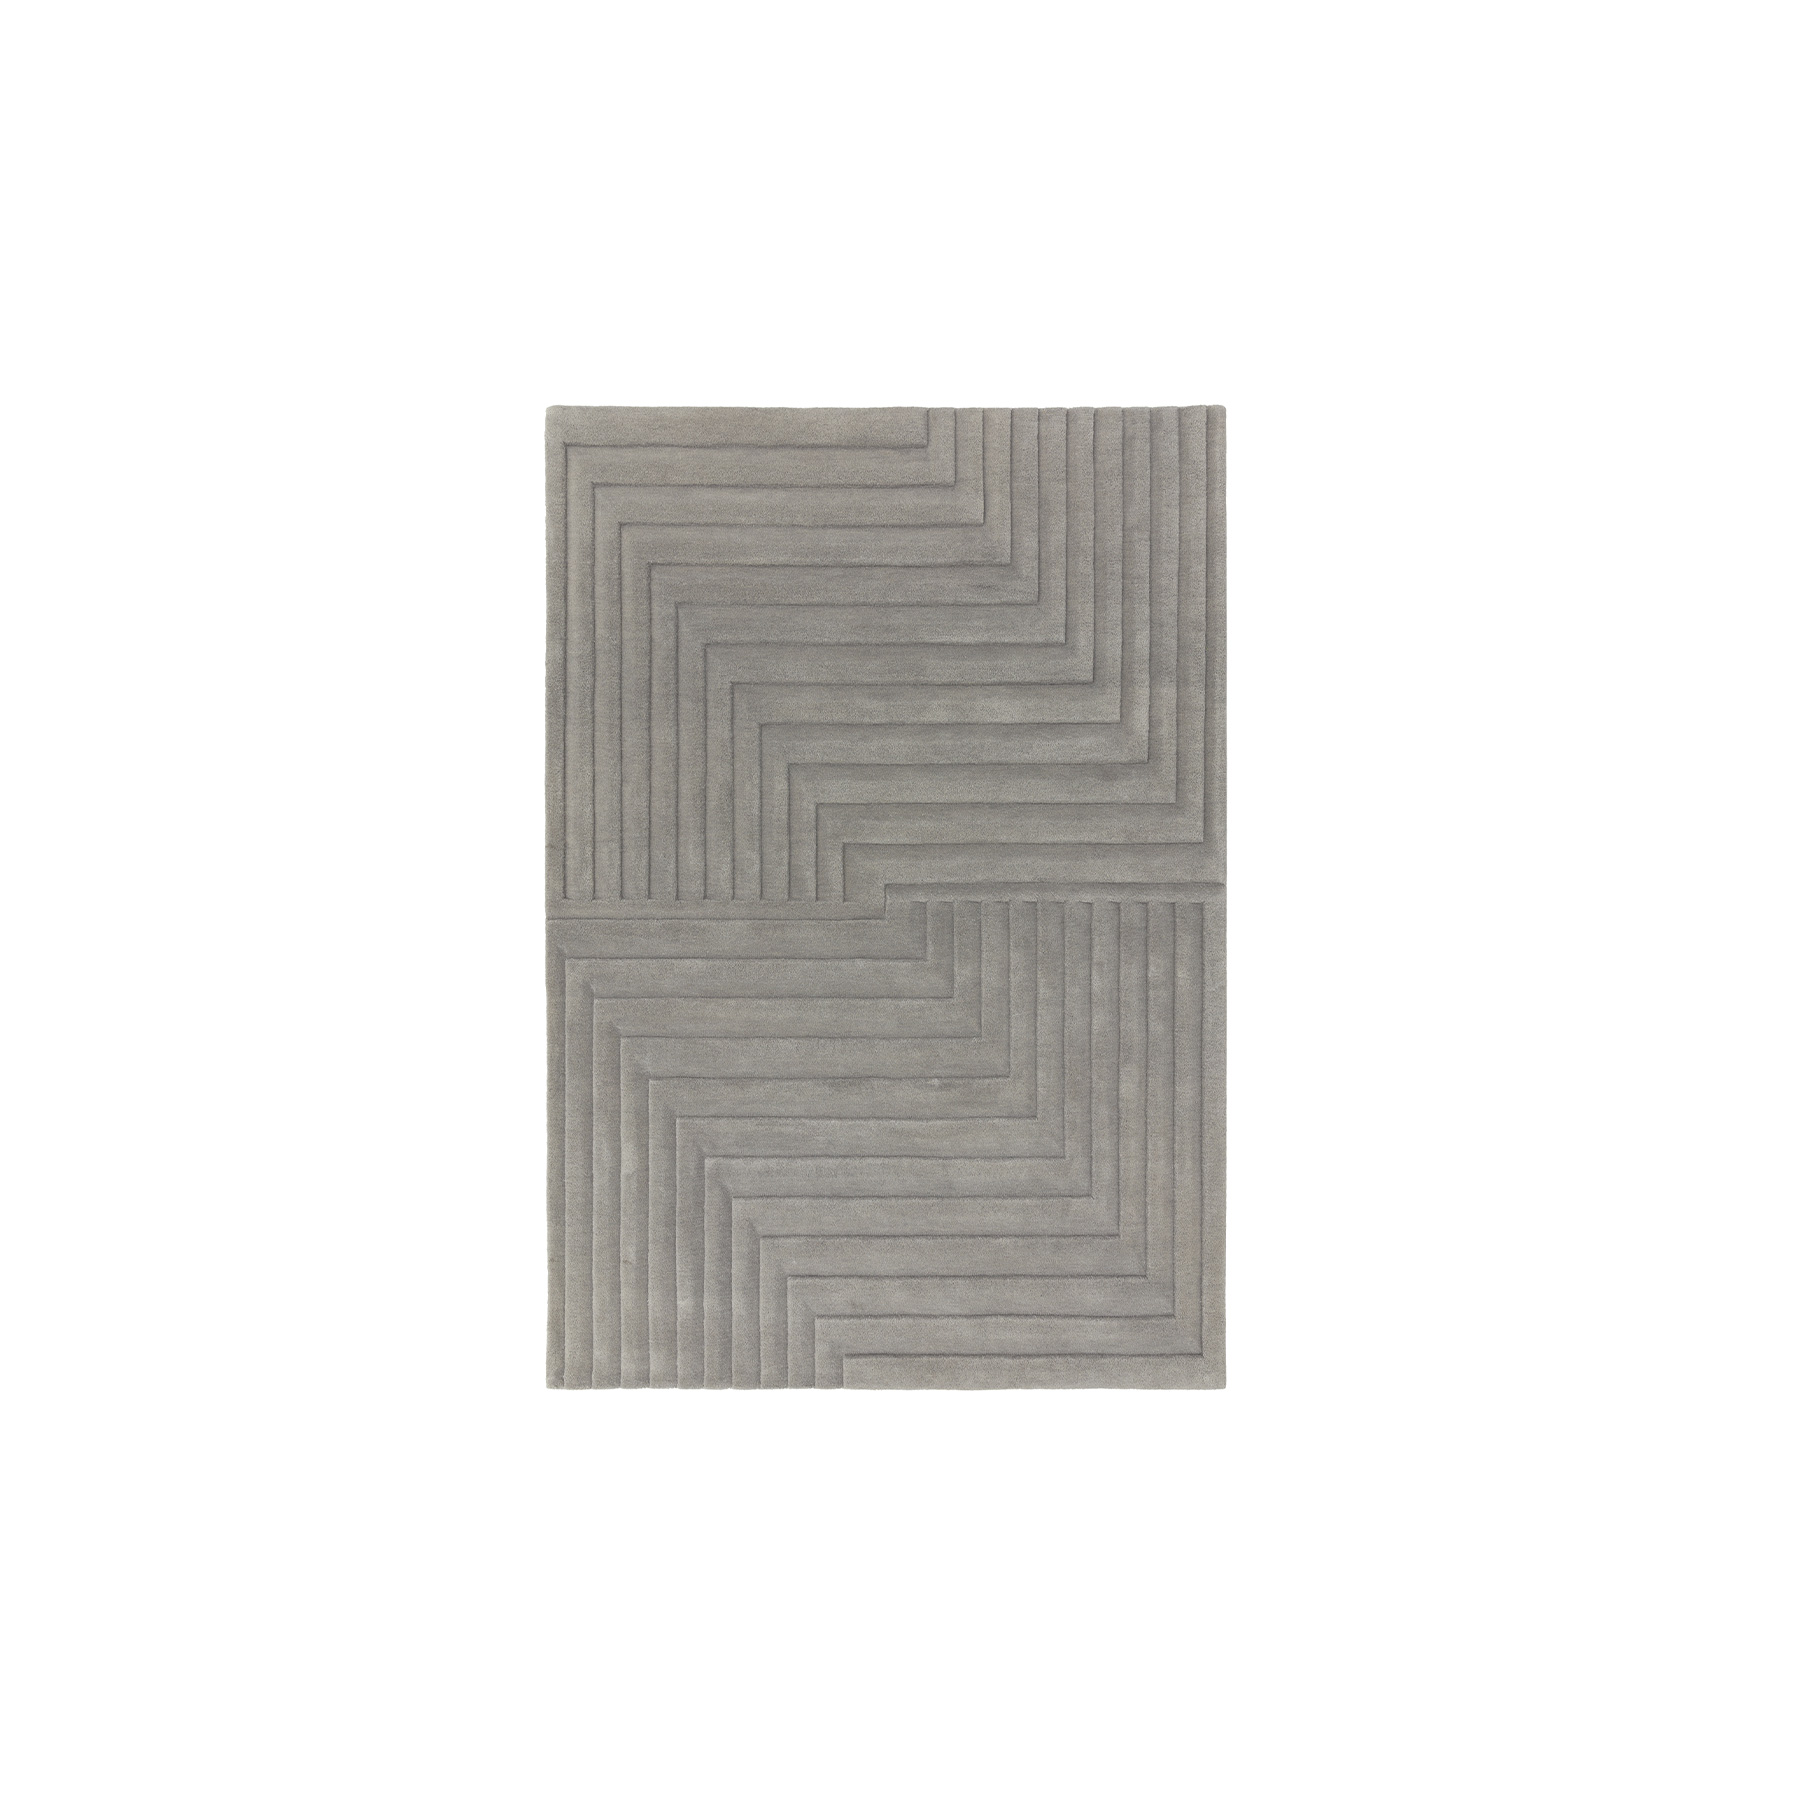 Form Silver Rug - Our collection of plain rugsfeature a largely neutral and natural palette of greys and creamswith modern fashionable contrast tones added throughout. The use of clean lines and complimentary borders adds visual interest whilist maintaining the contemporary ethos. Fomr is a series of sophisticated 3D sculptured rugs, expertly hand craved. Available in different sizes.